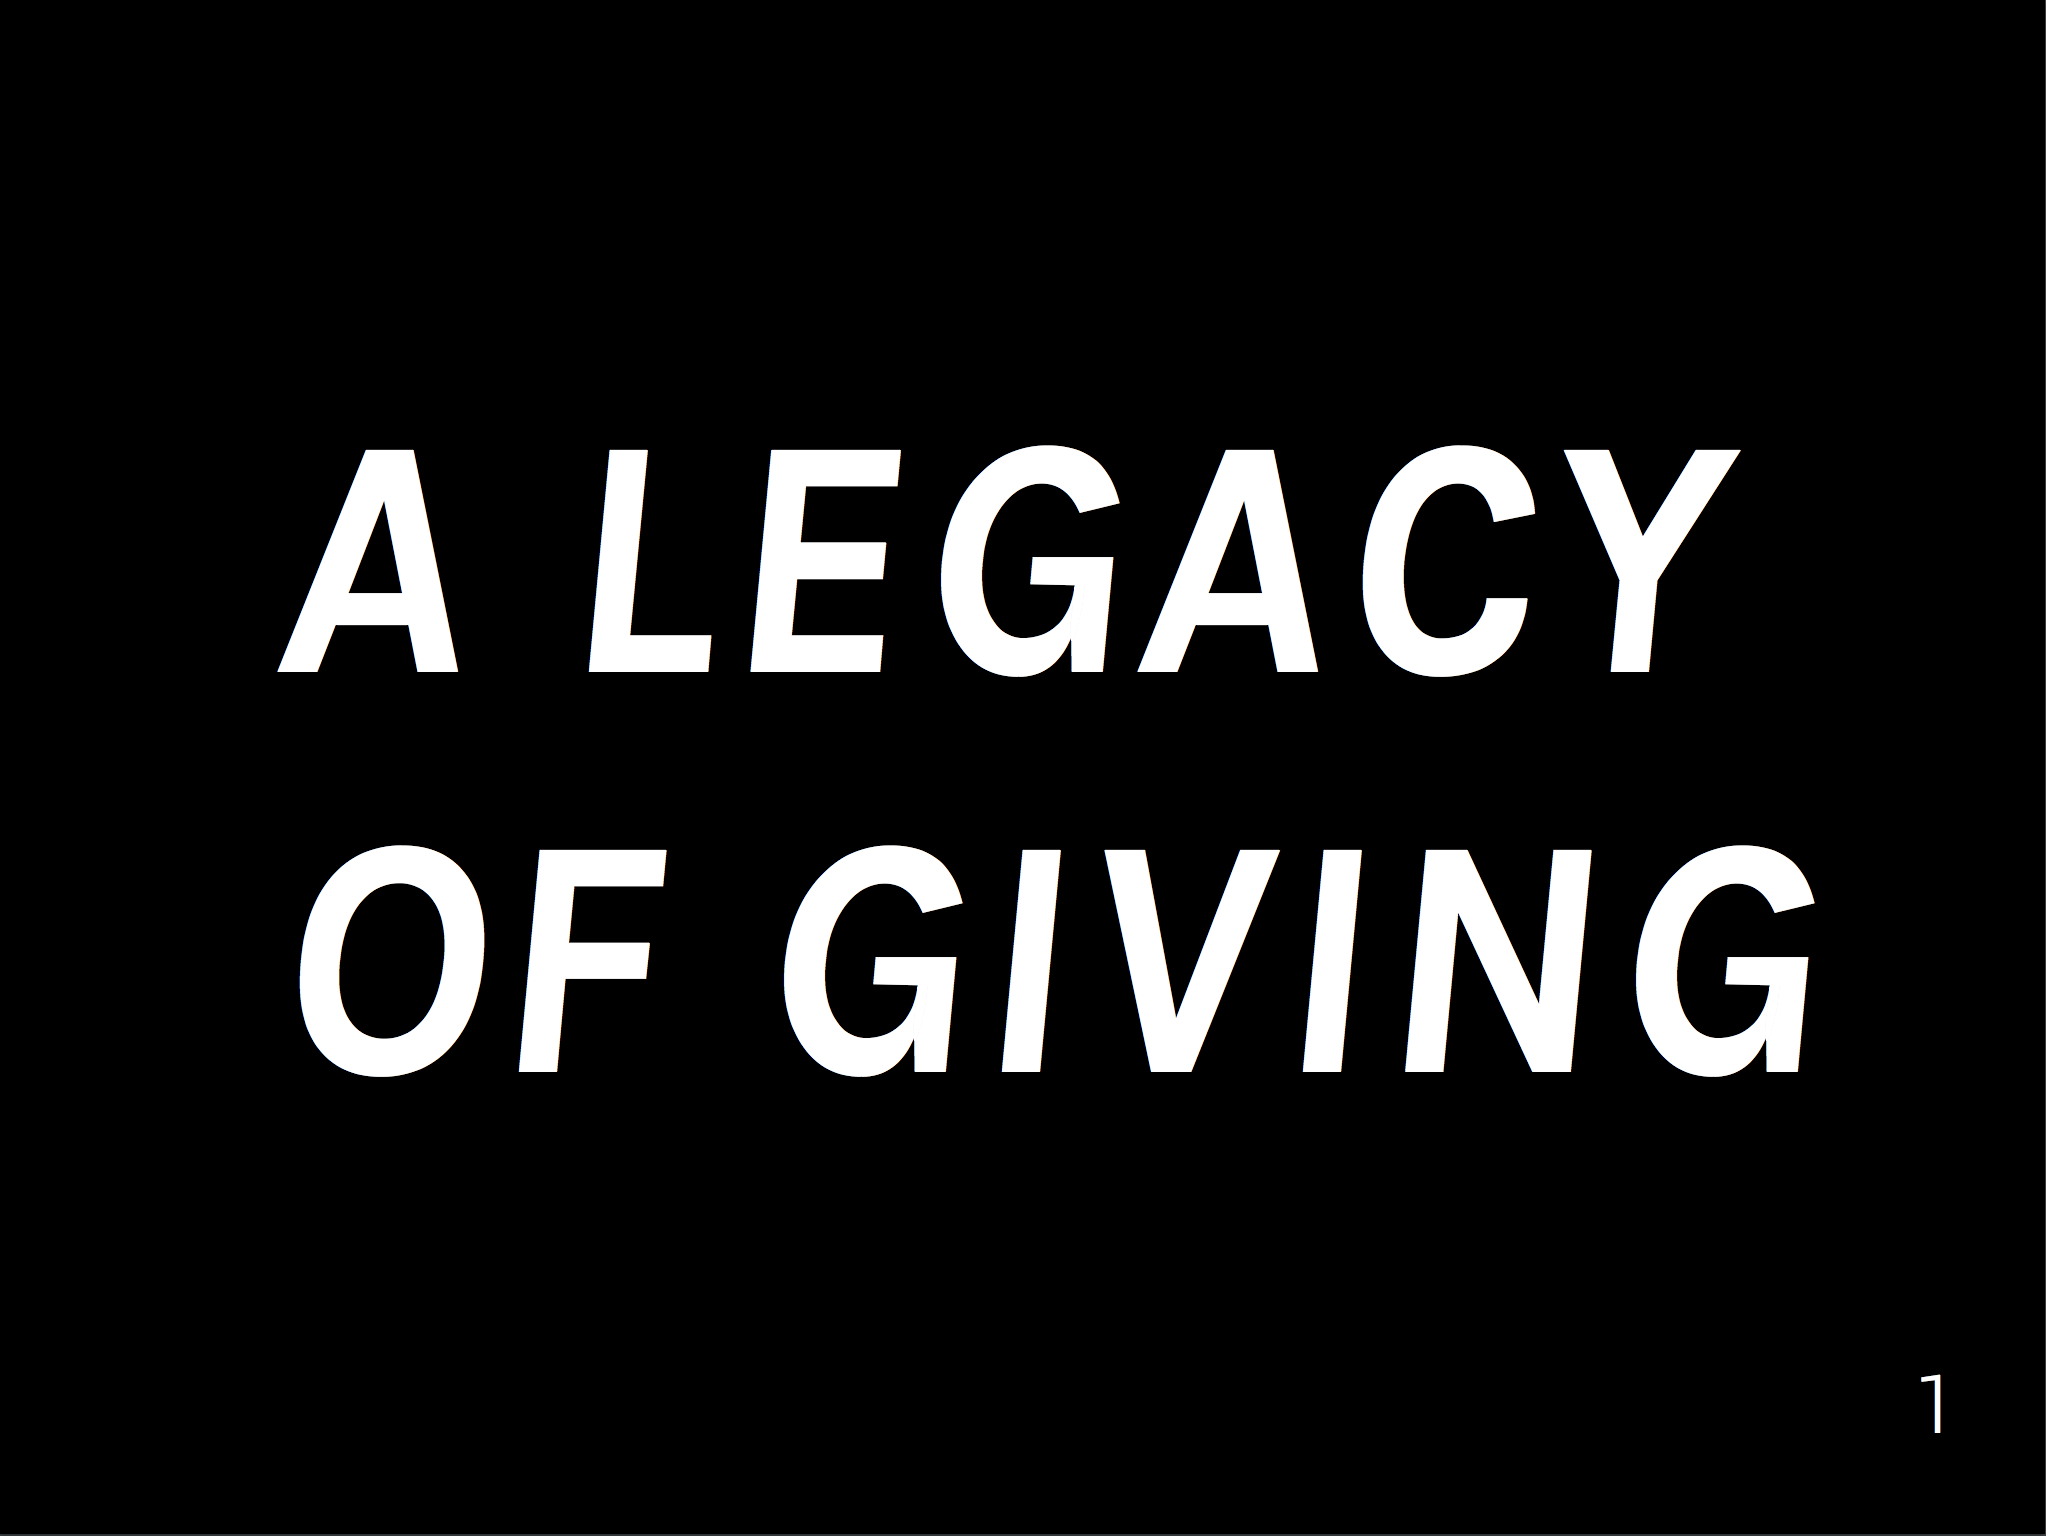 See the deck - Learn how design thinking exercises helped A Legacy of Giving transform its mission.